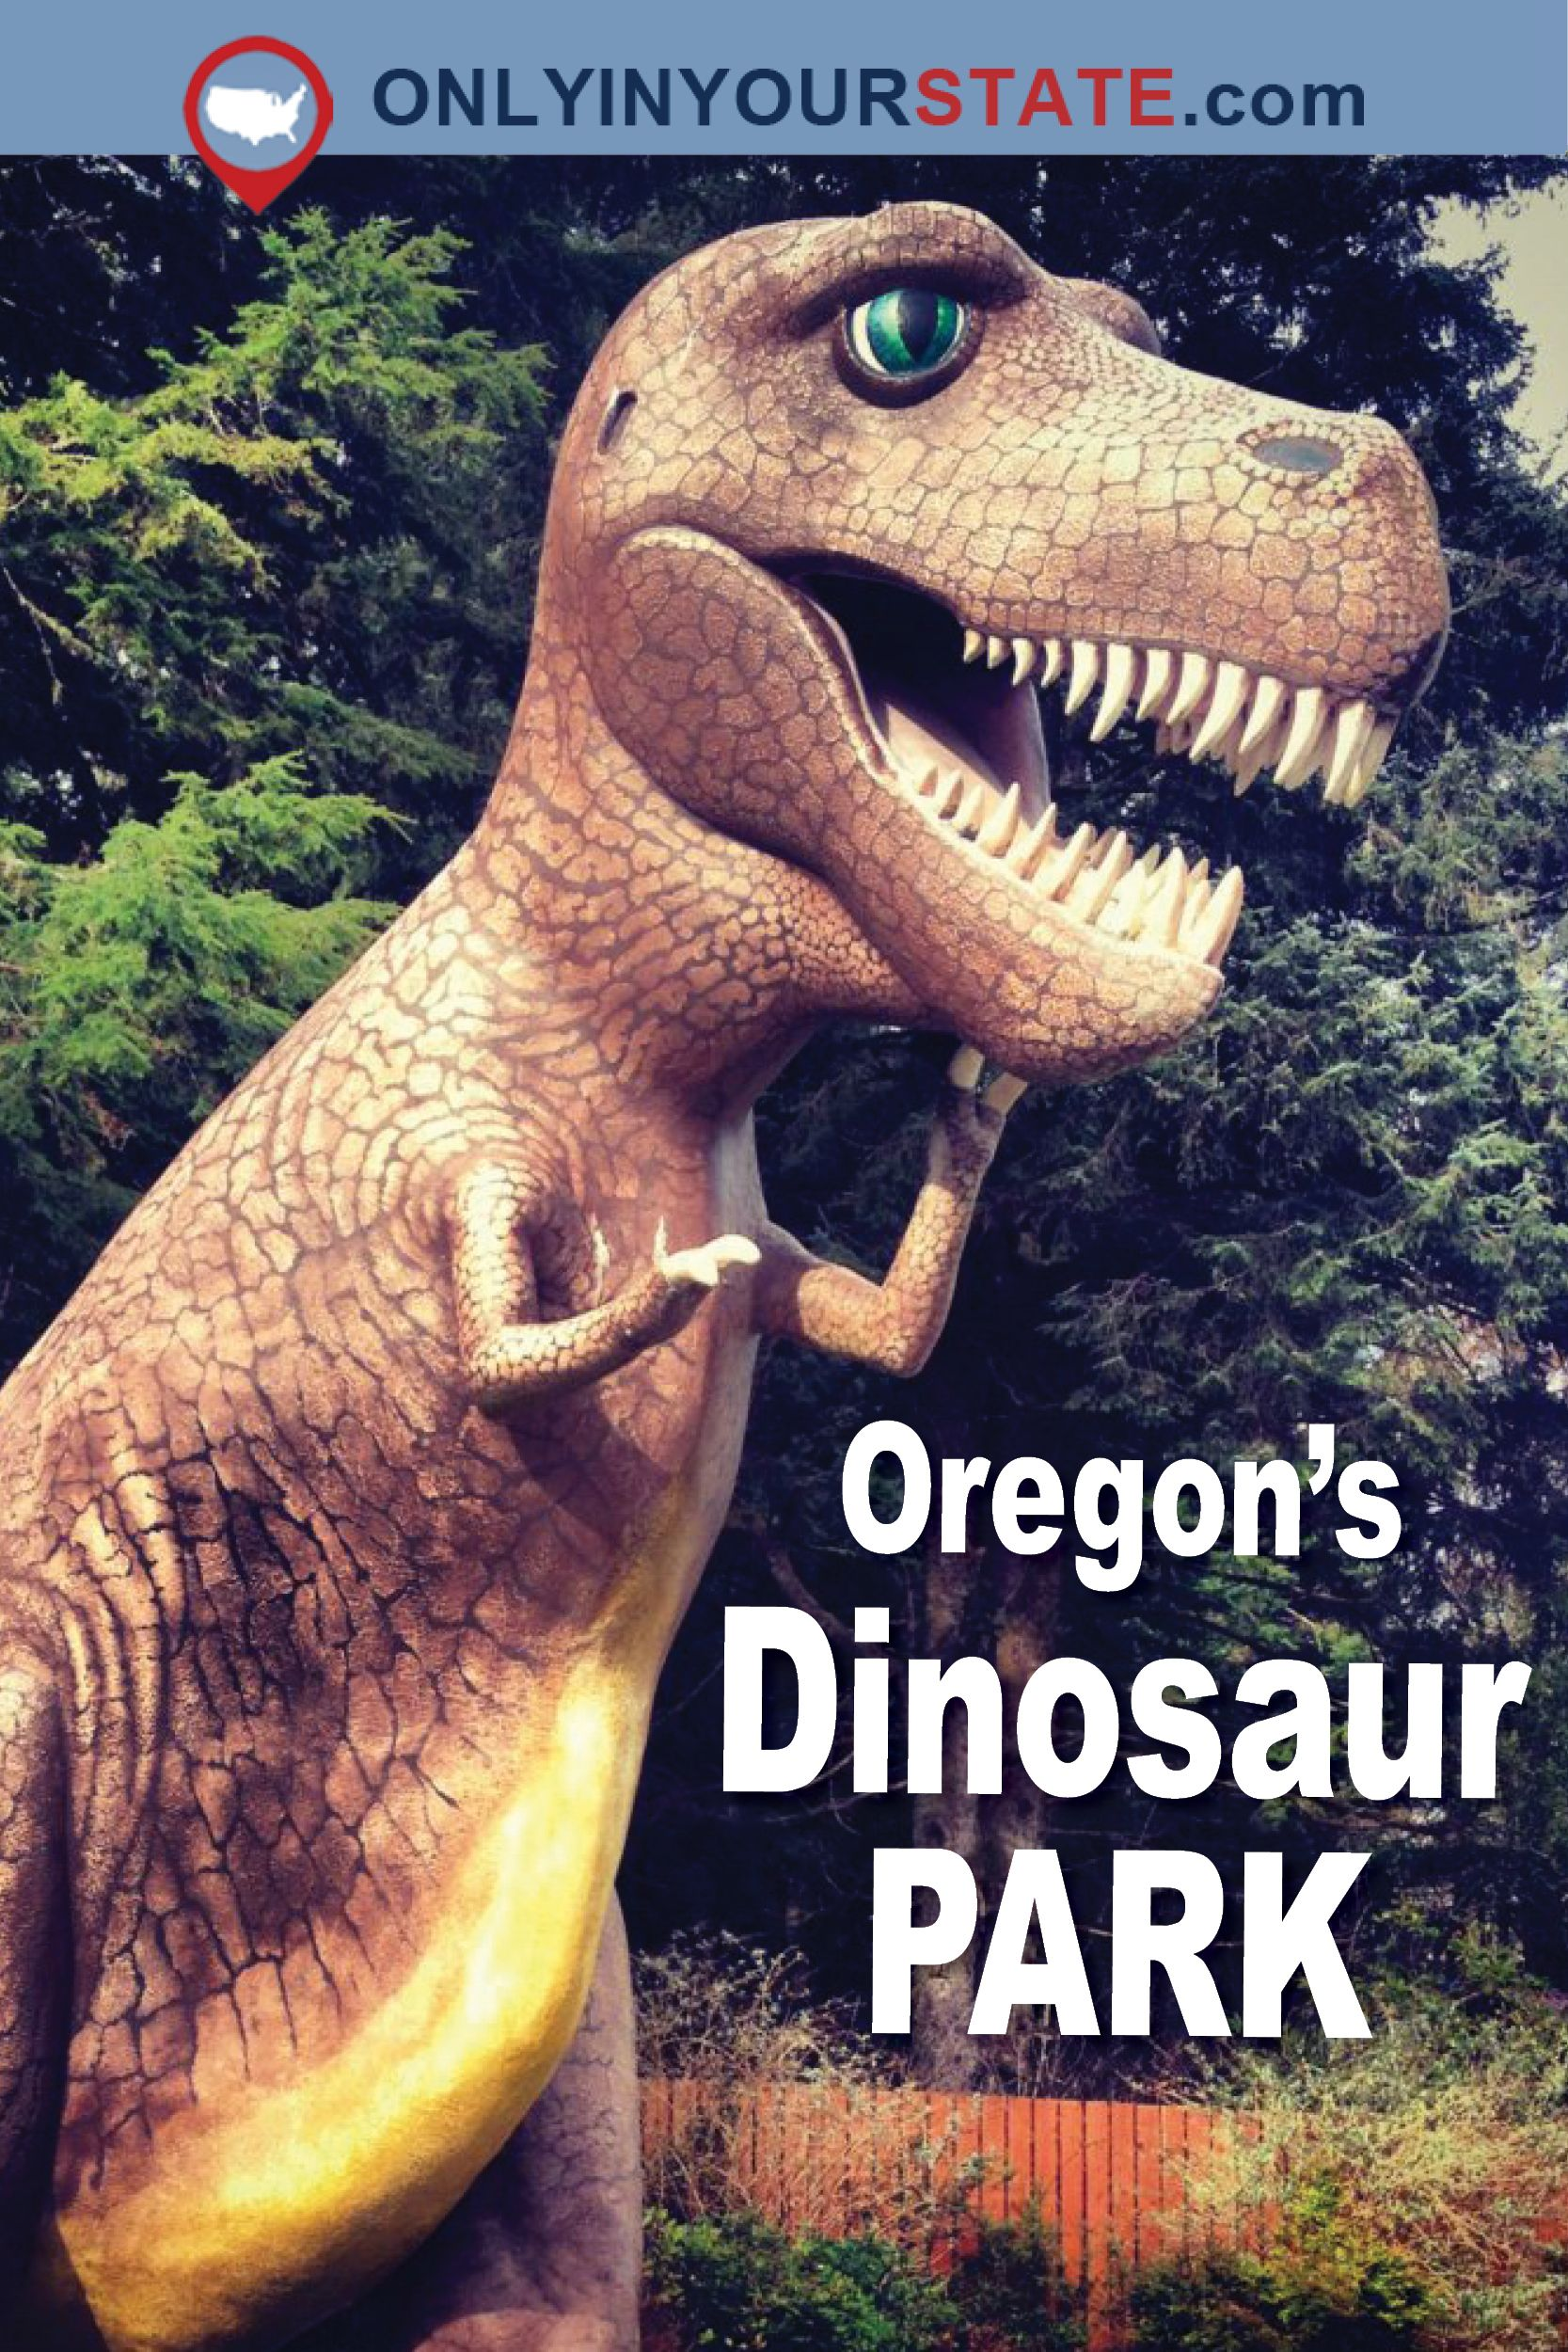 Travel | Oregon | Attractions | Sites | Unique | Activities | Explore | Things To Do | Dinosaur | Dinosaur Park | Family Friendly | Roadside Attractions #traveloregon